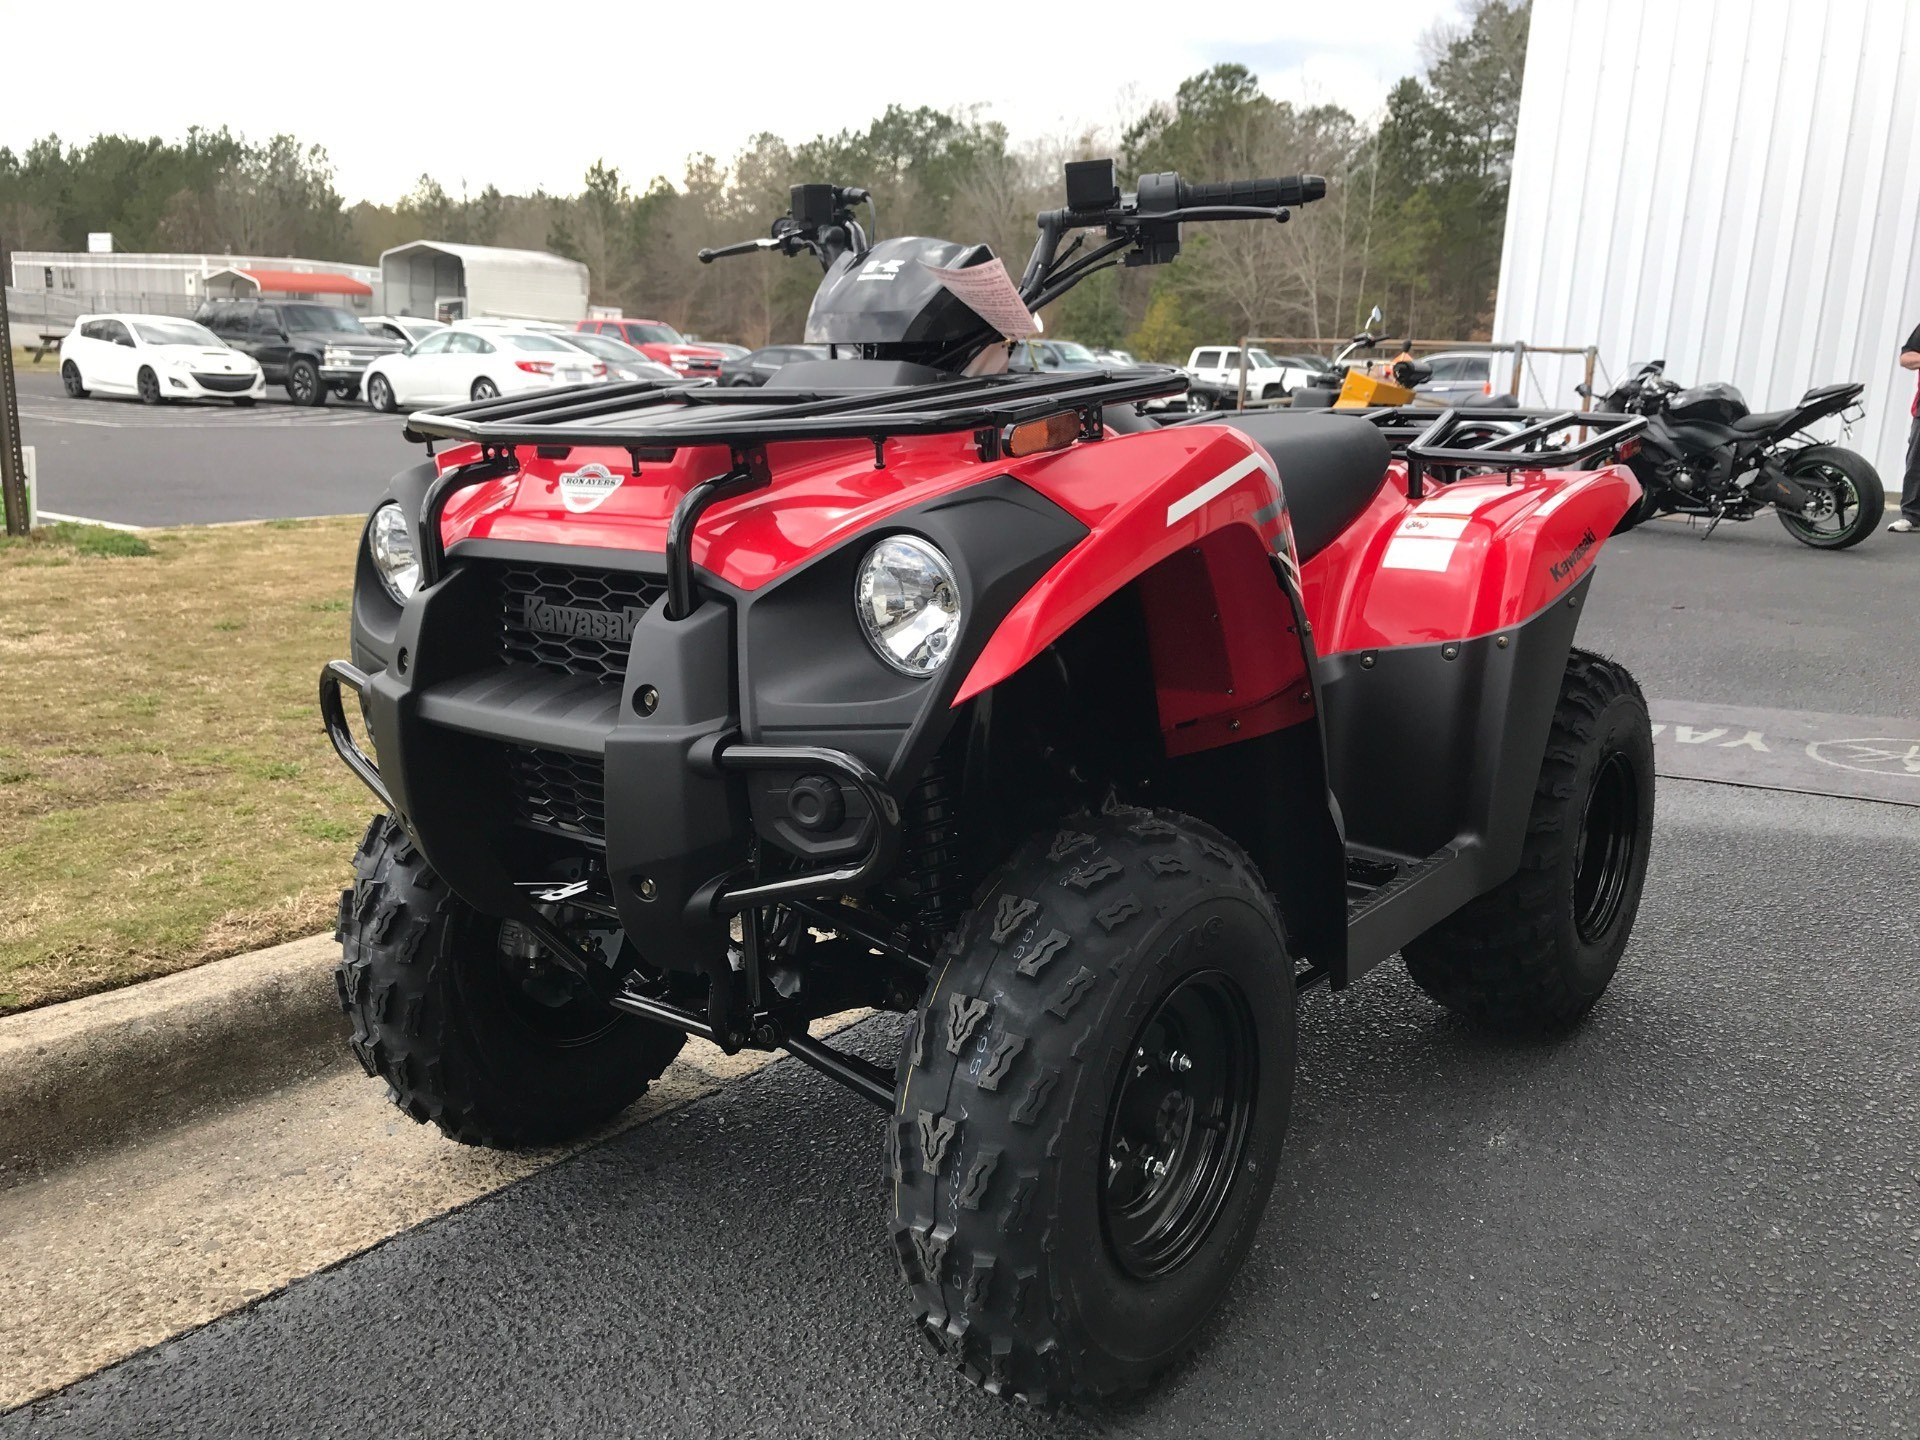 2020 Kawasaki Brute Force 300 in Greenville, North Carolina - Photo 5